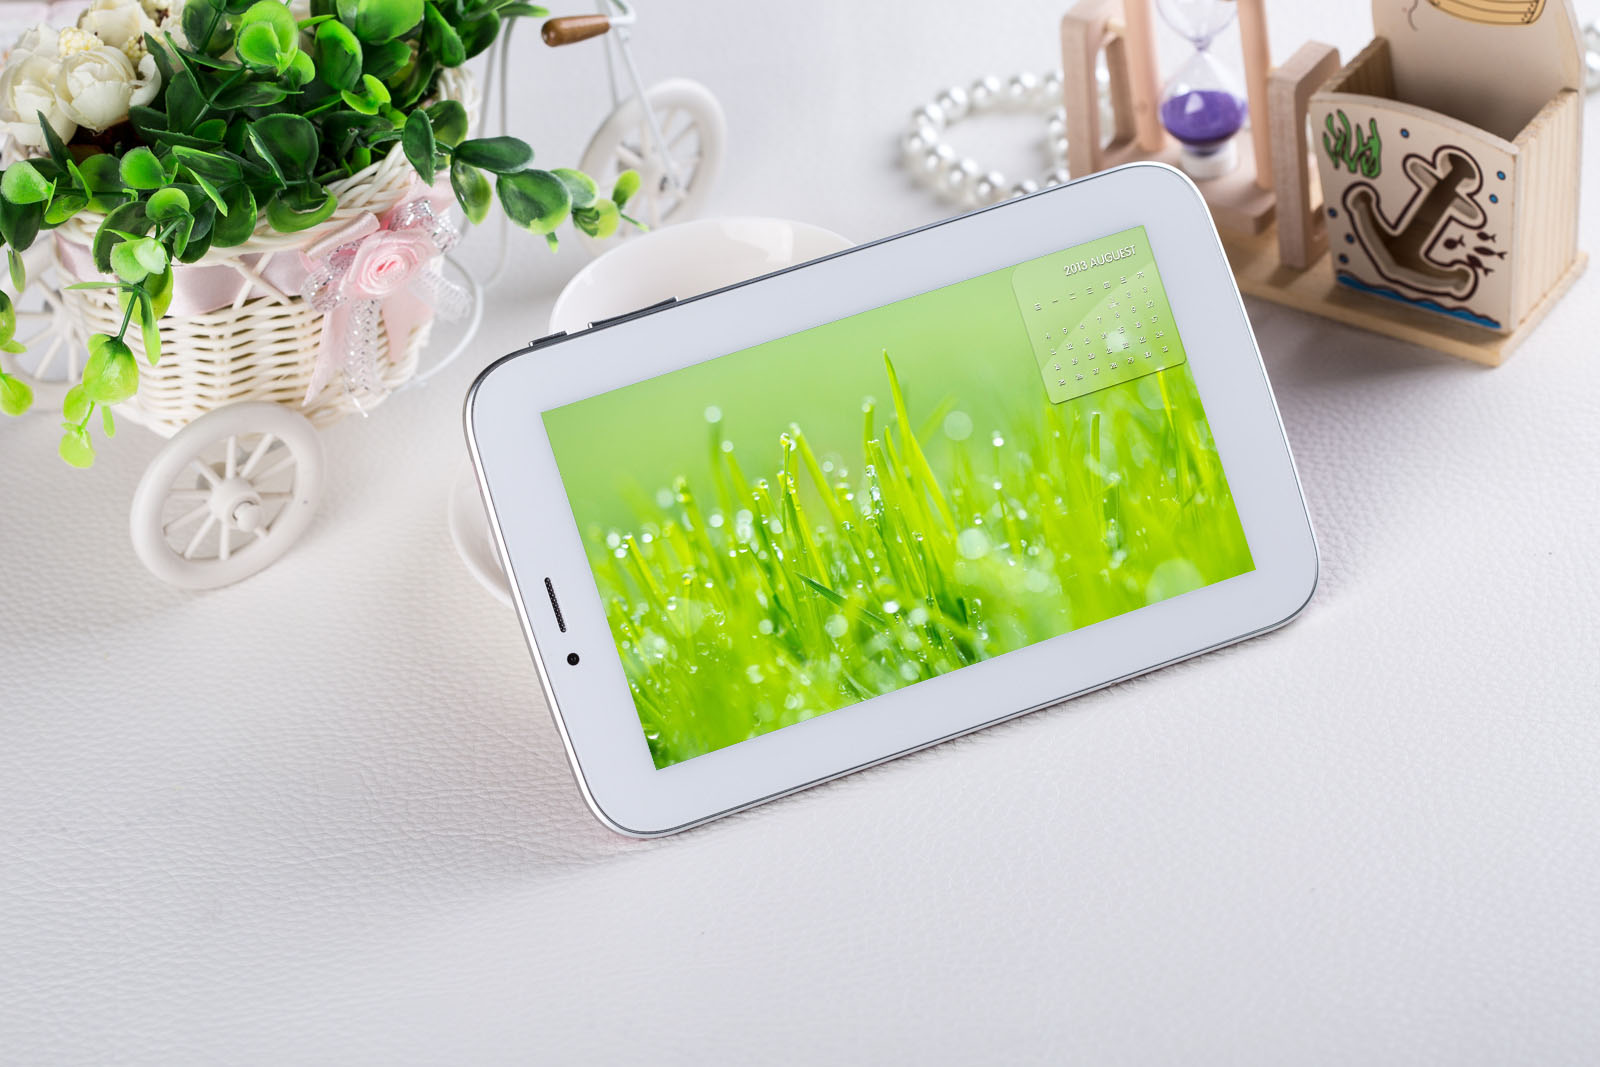 709A-7 Inch Android 2g Phone Calling Tablet PC